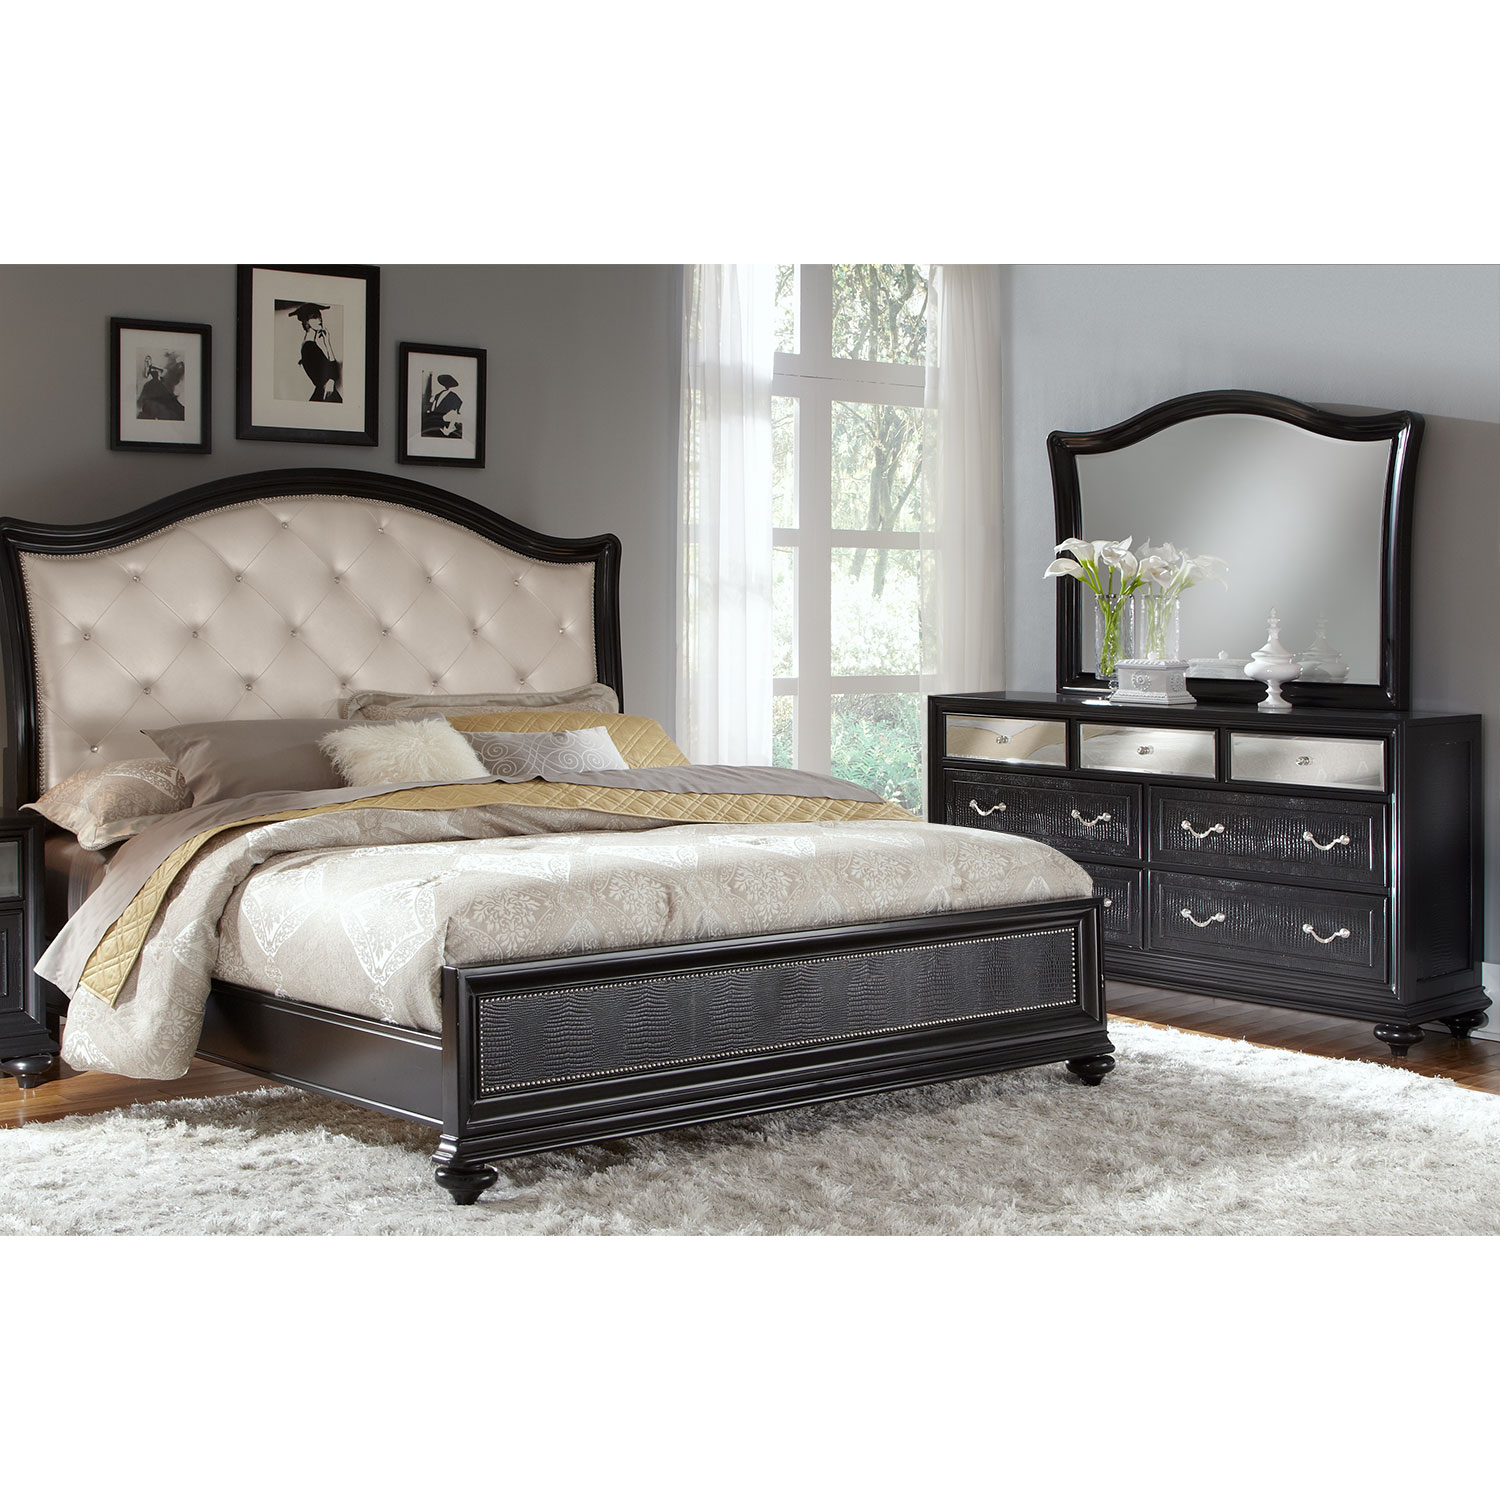 Marilyn 5 Piece King Bedroom Set Ebony By Pulaski Bedroom Furniture Marilyn 5 Piece King Bedroom Set